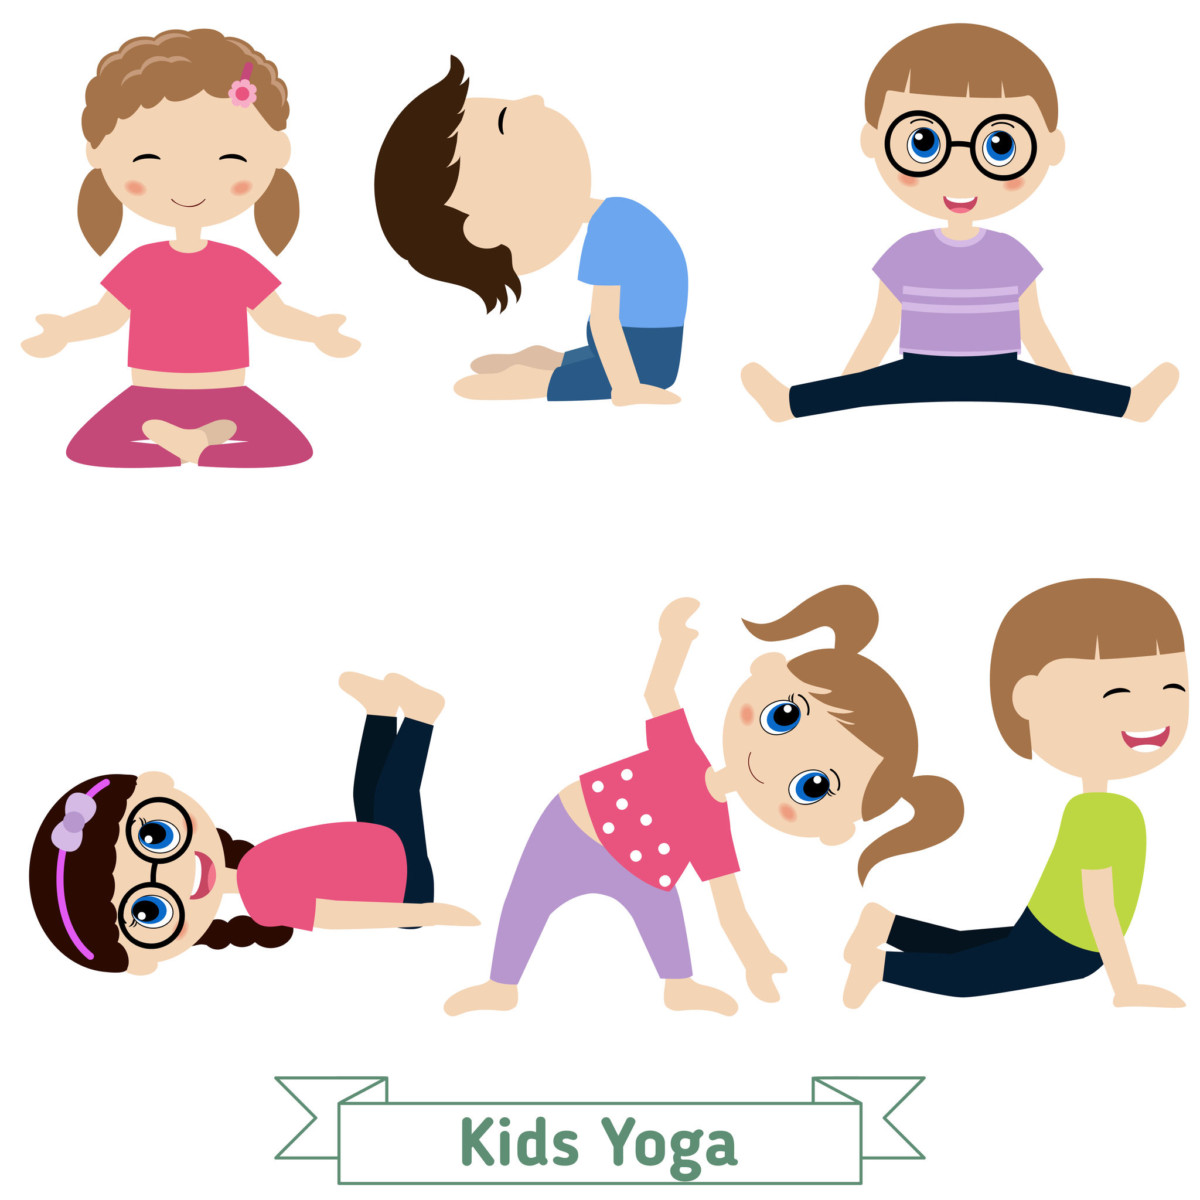 Children doing yoga in different positions